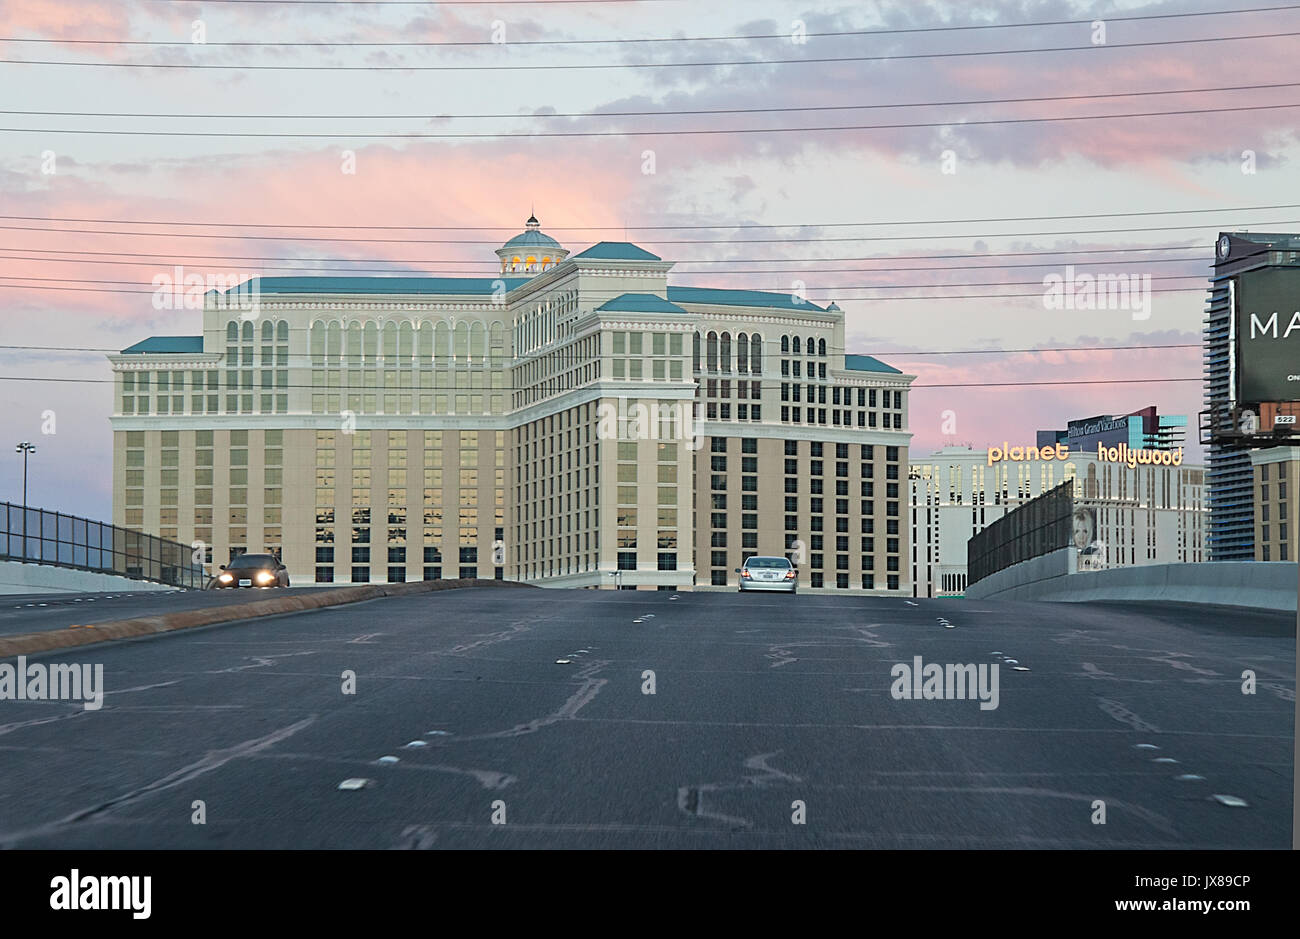 Las Vegas,  driving over the bridge with a distant view of Bellagio Hotel, Casino - Stock Image